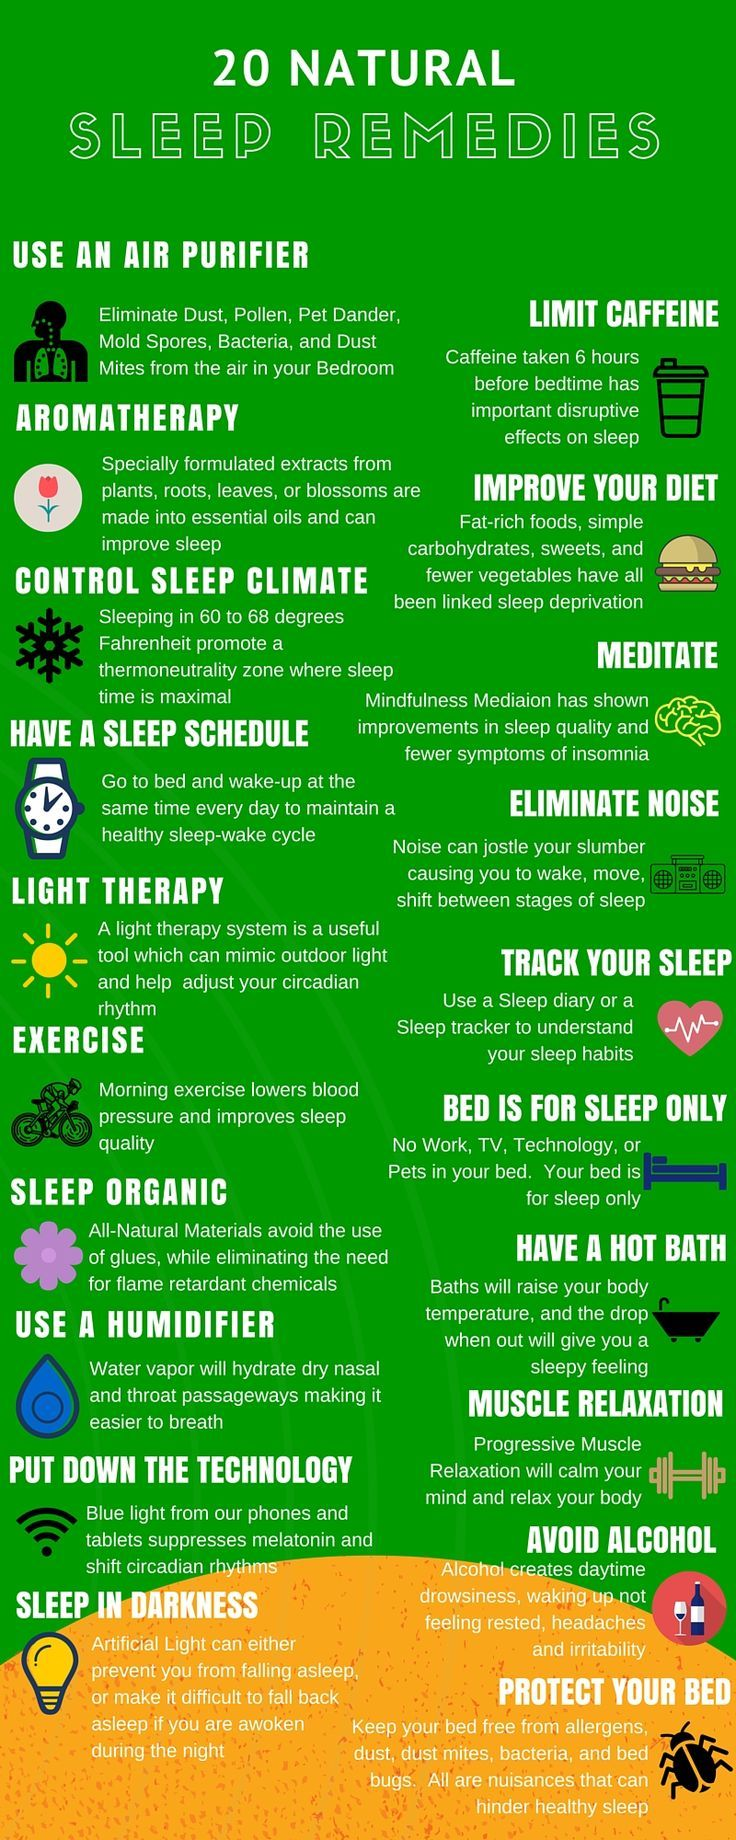 Fatigue remedies for men and women Ready to get a good nights sleep naturally? Heres how!